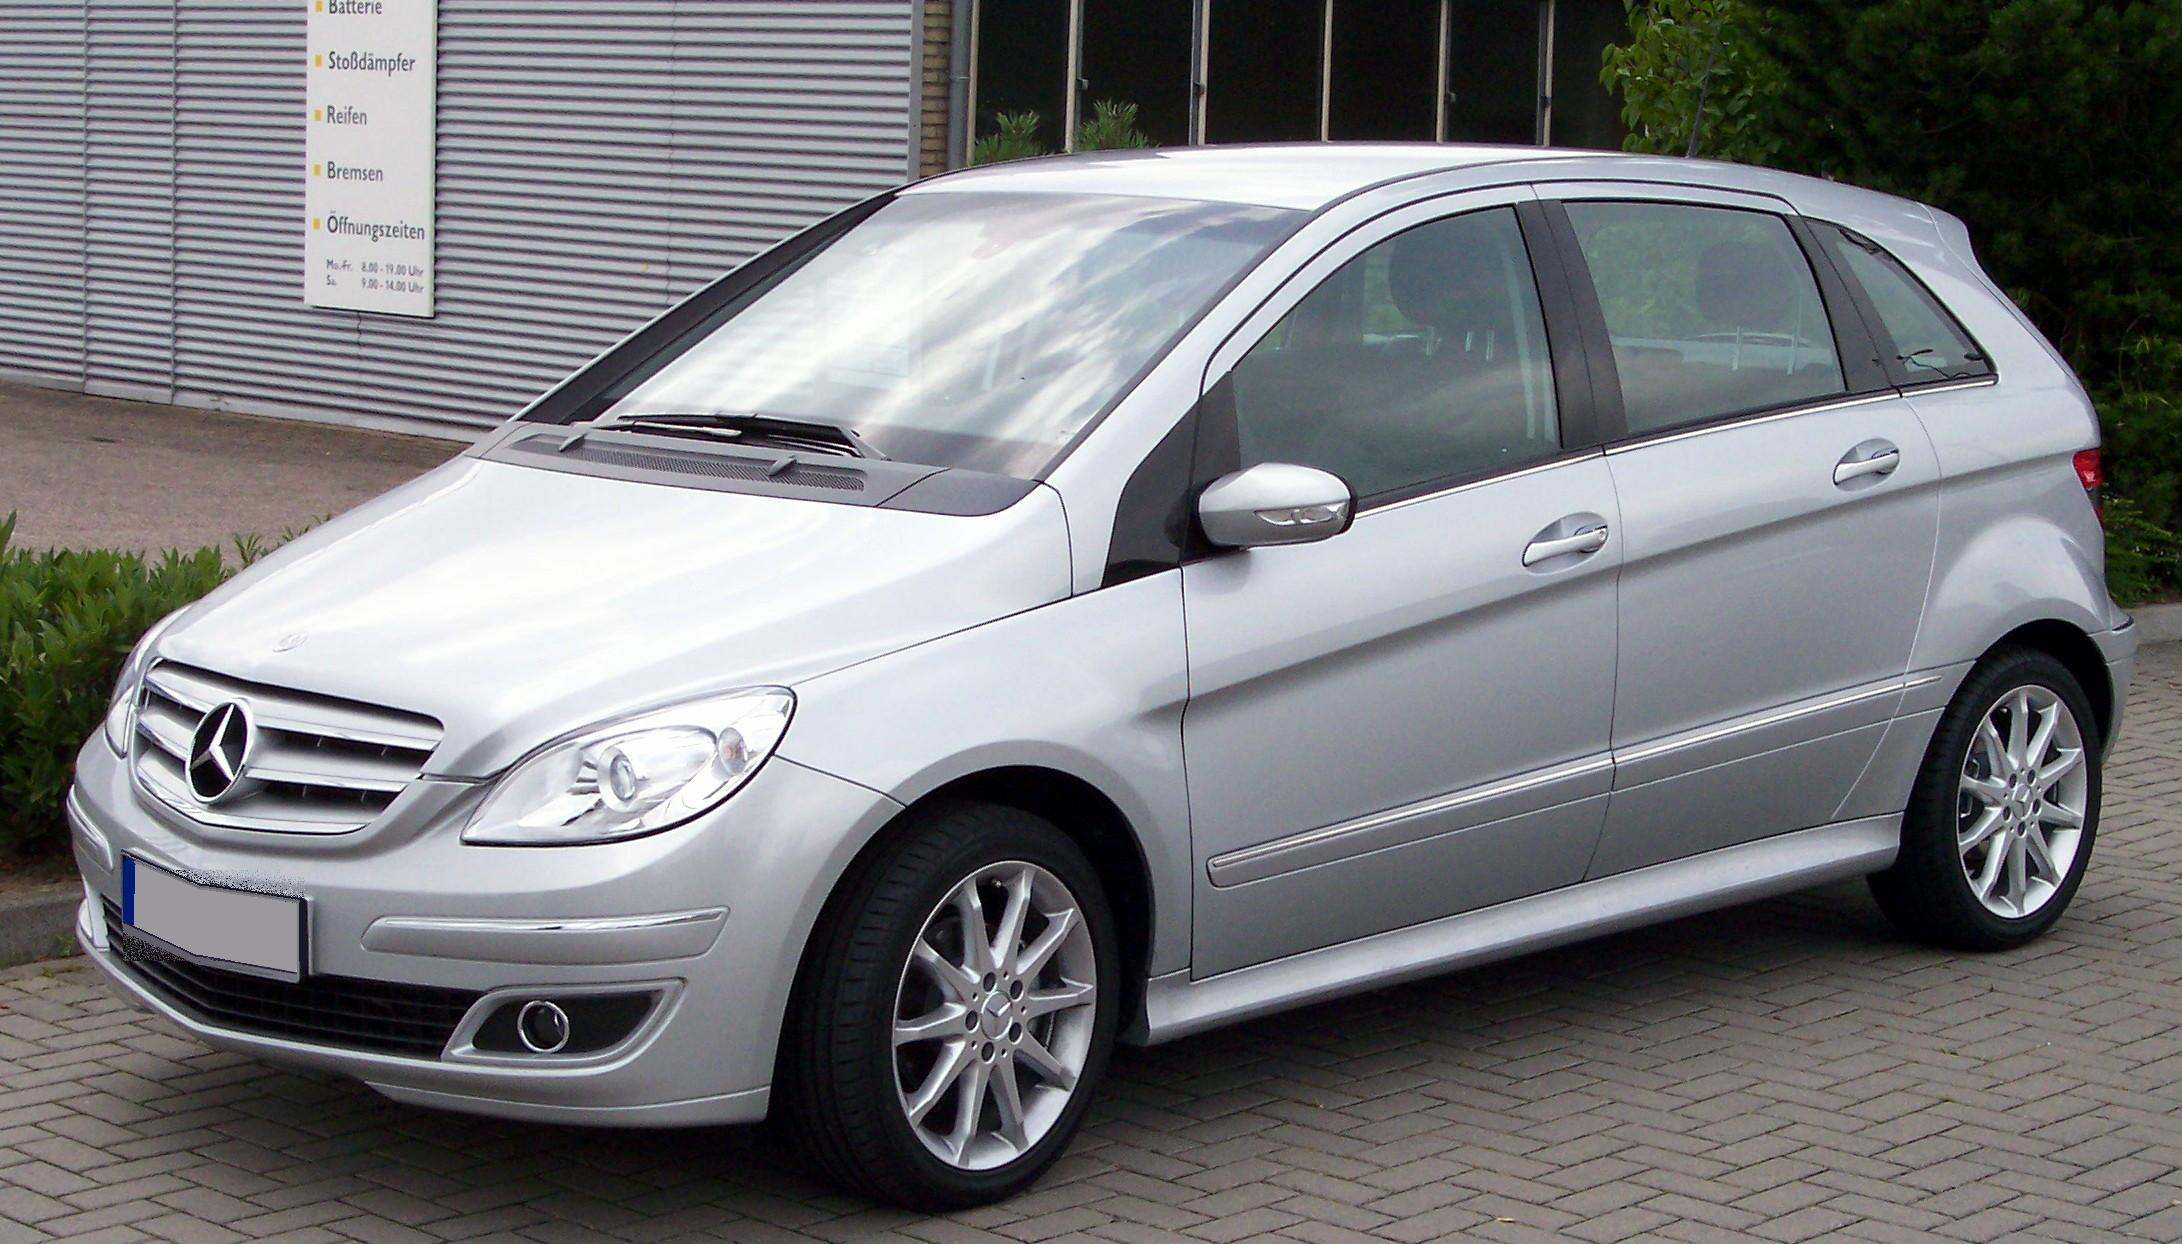 Mercedes-benz b170 photo - 3